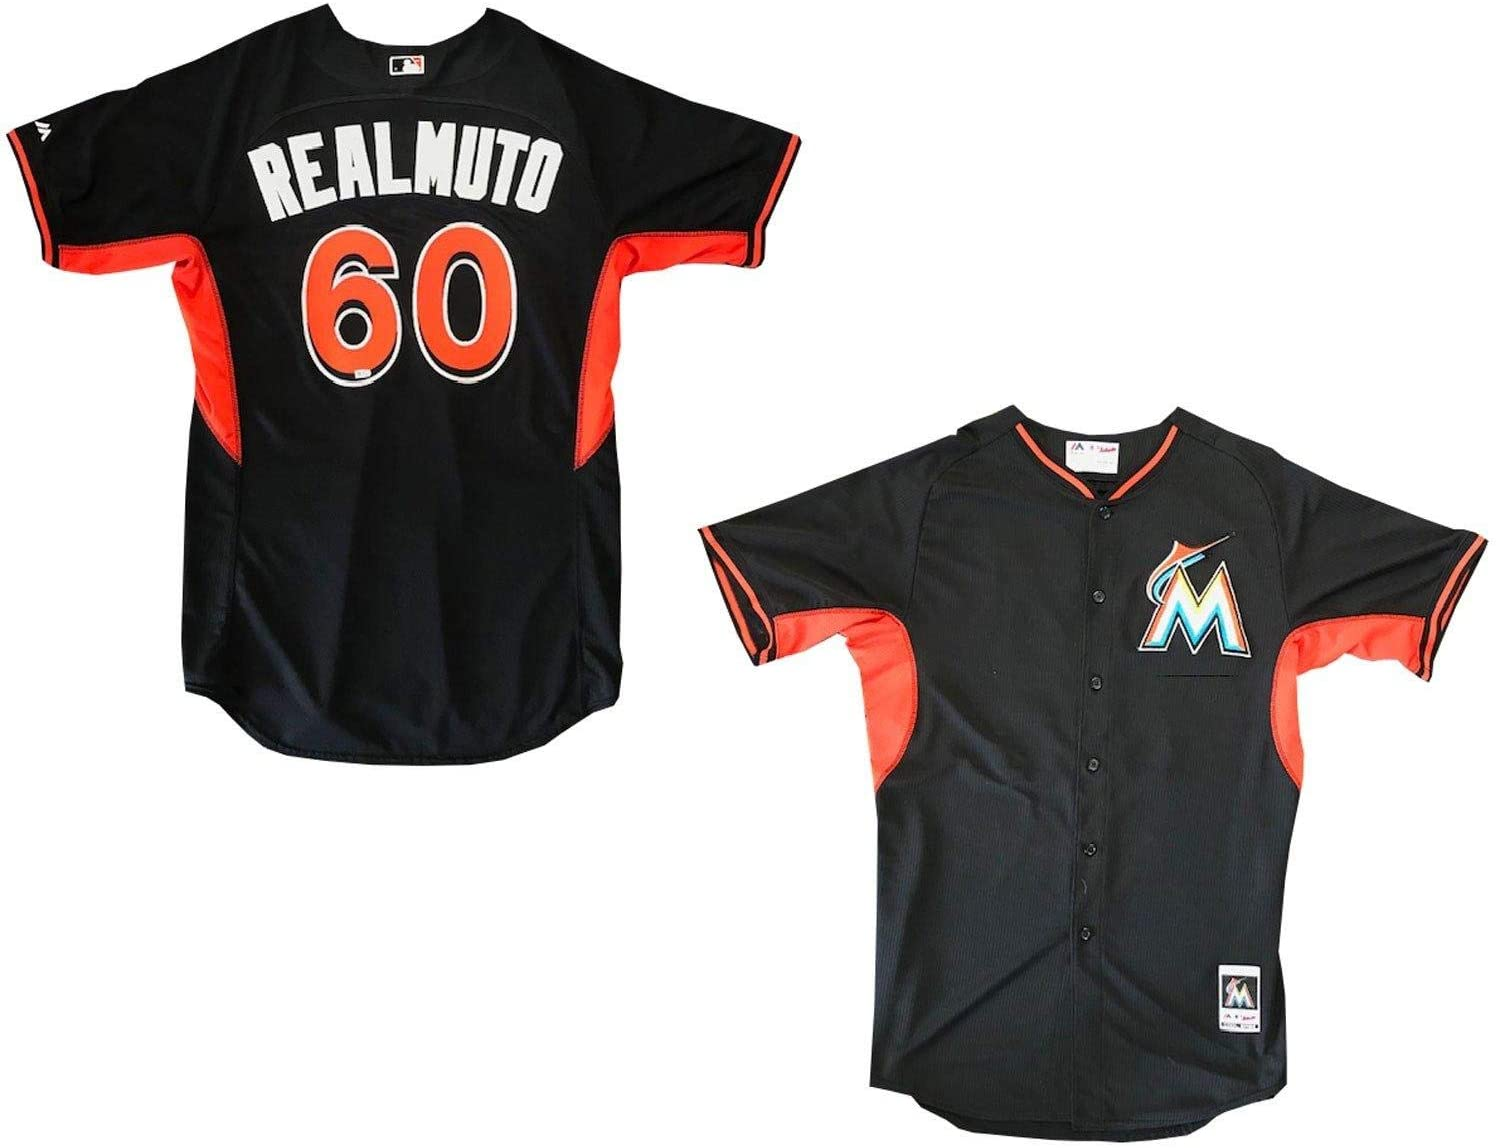 Jacob Realmuto Unsigned Game Used Miami Marlins Warm Up Jersey (MLB) - MLB Game Used Jerseys